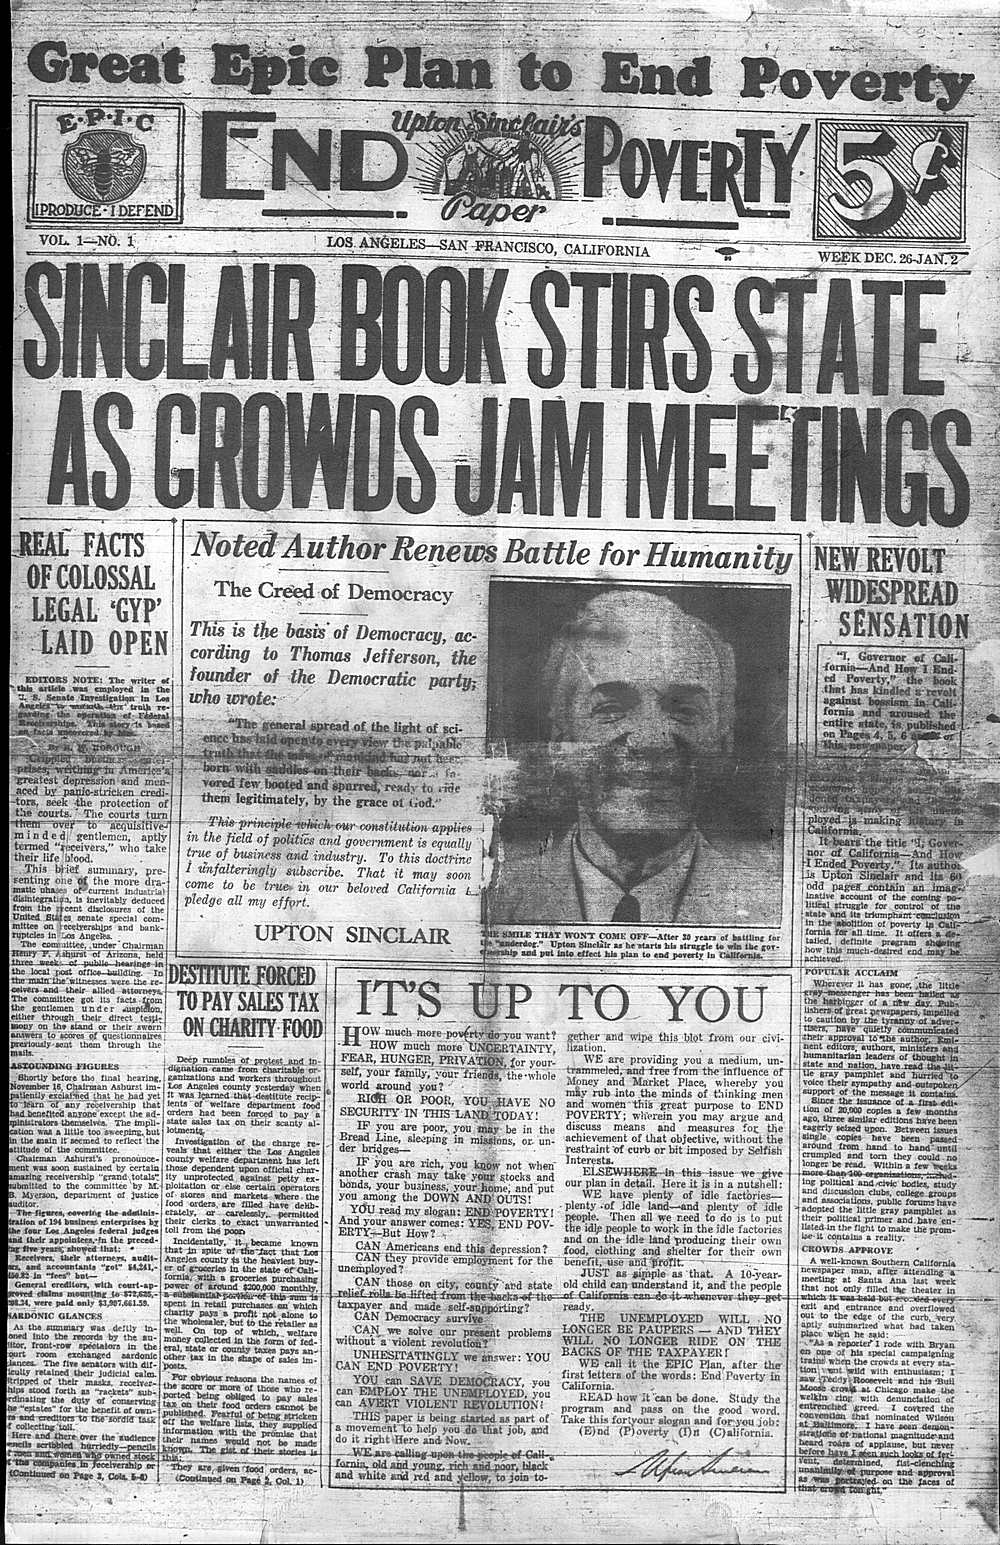 006 Epic News 02p1 Essay Example The Jungle Upton Sinclair Book Rare Review Full